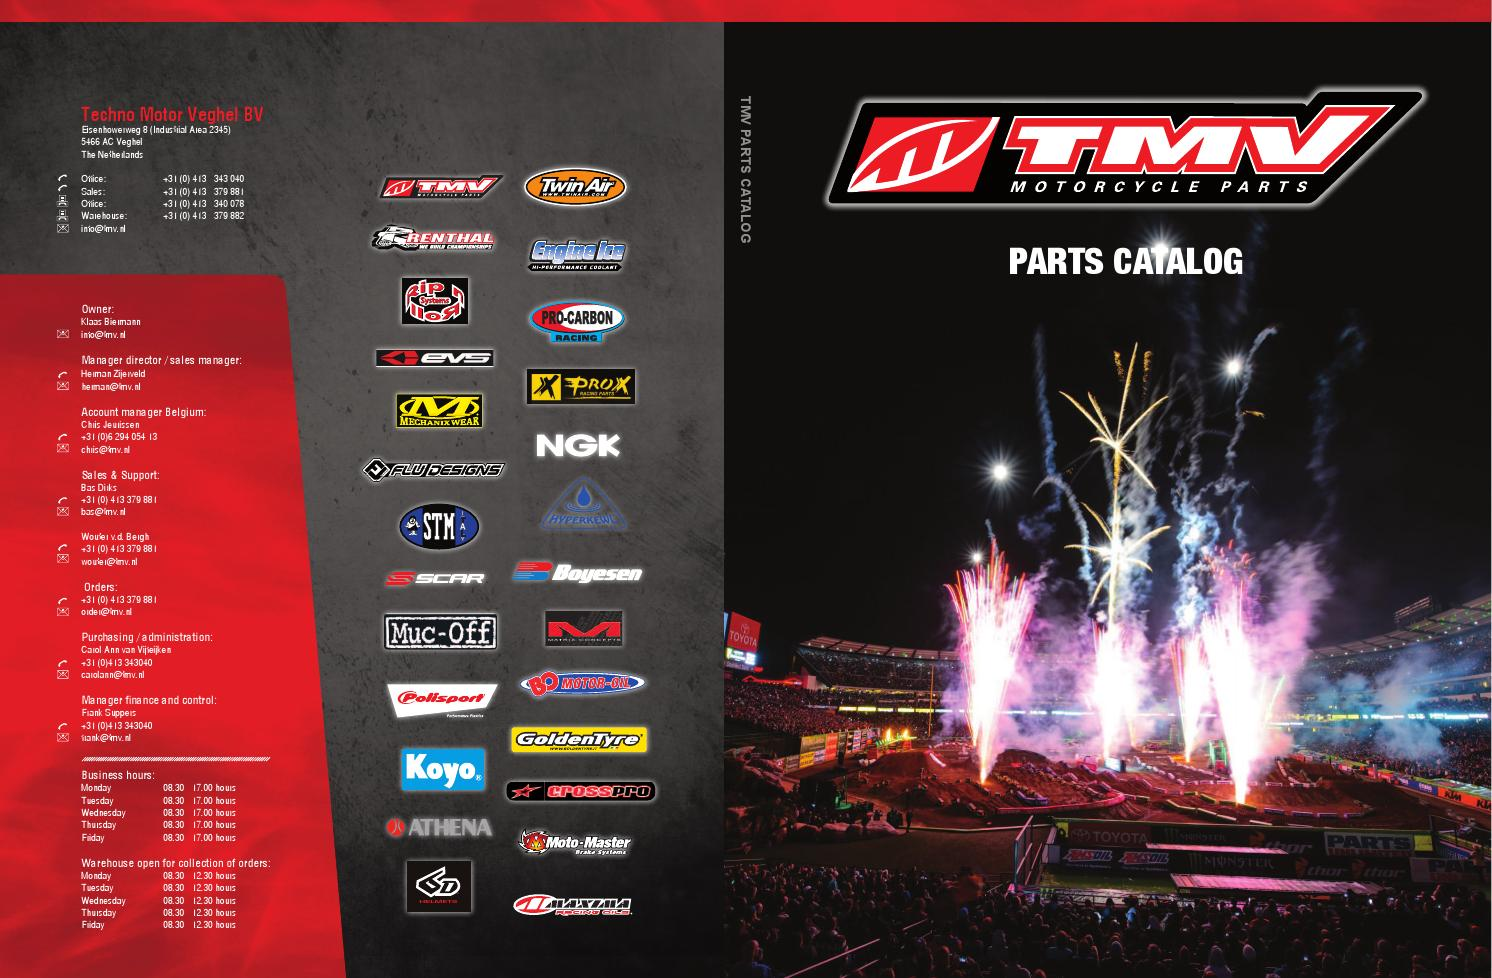 Tmv Catalog 2014 By Motorcycle Parts And Acc Issuu 08 Kawasaki Kfx450r Wiring Diagram